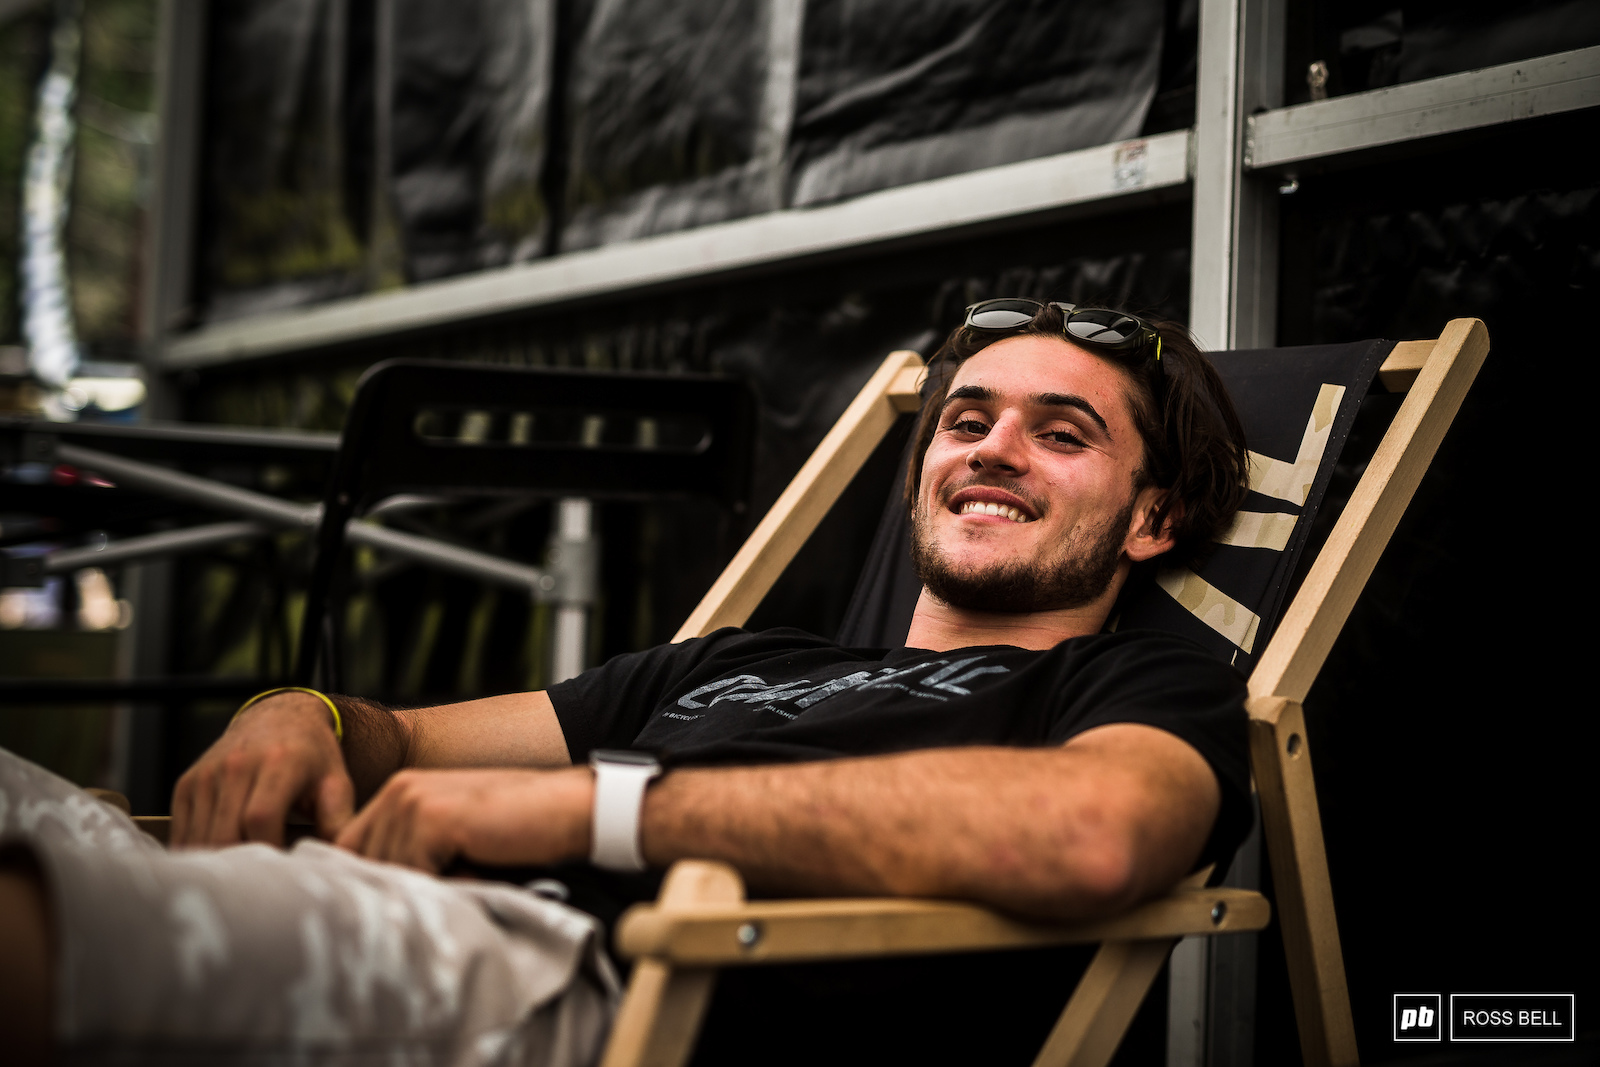 Thibaut Daprela is all good after his massive race run smash last weekend in Andorra.